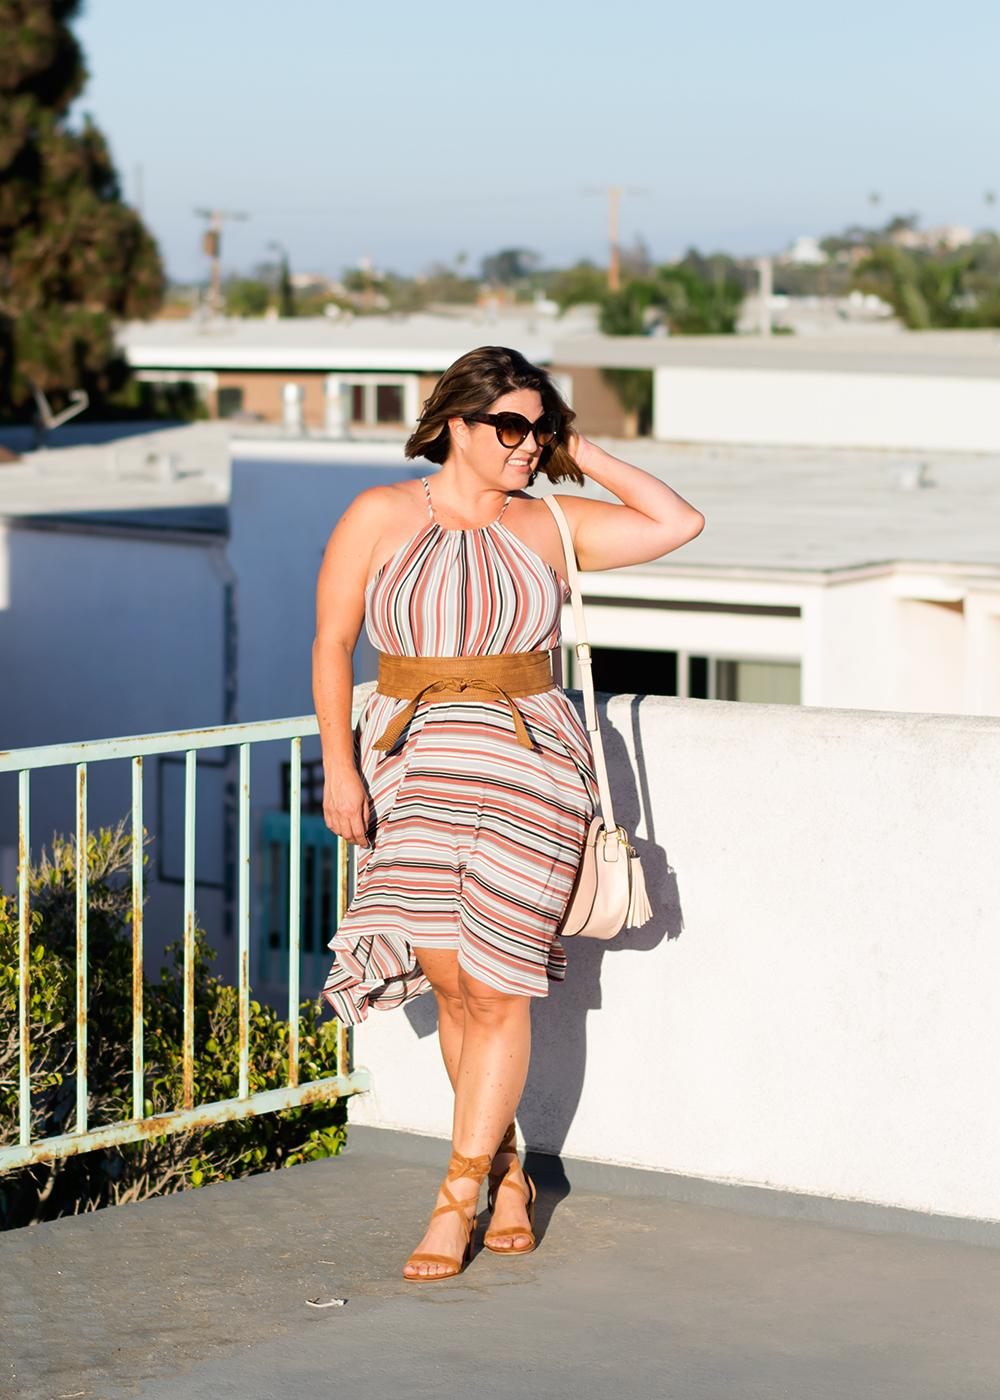 Casual Outfit Los Angeles Fashion Street Style Blogger Personal Stylist Nordstrom Dresses 0516